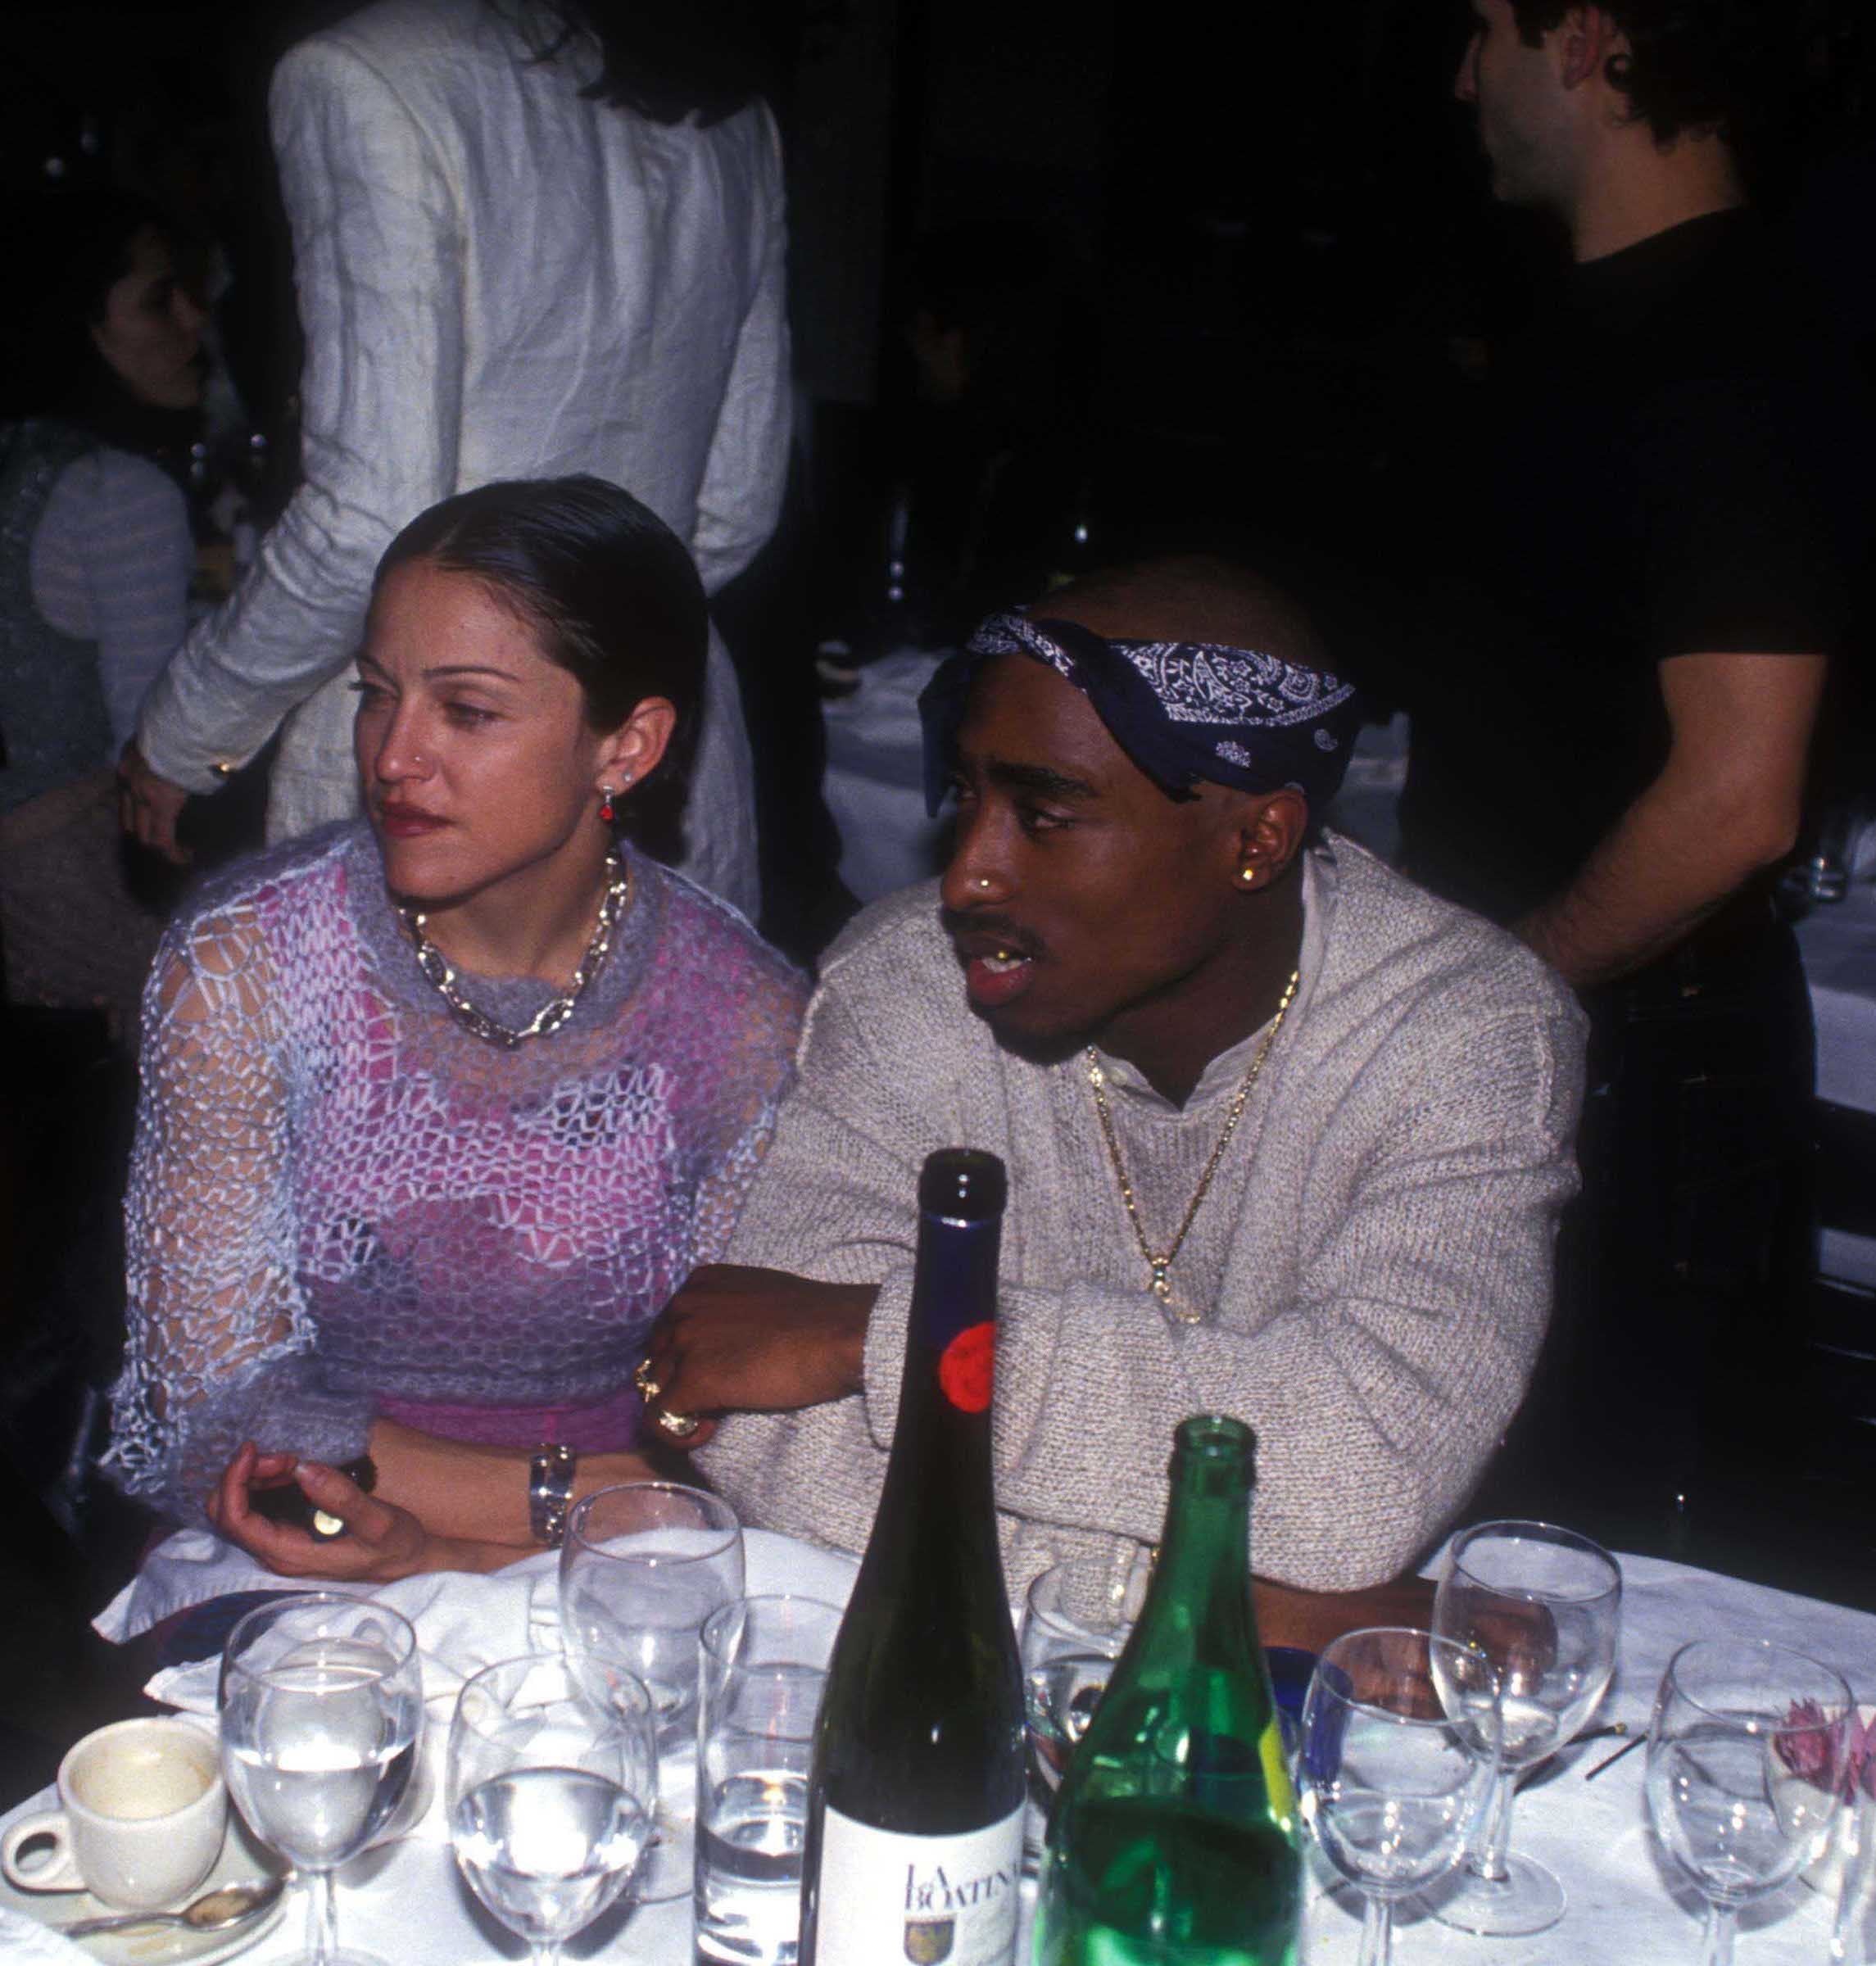 Madonna and Tupac Shakur at the Interview Magazine party in New York City on March 1, 1994.